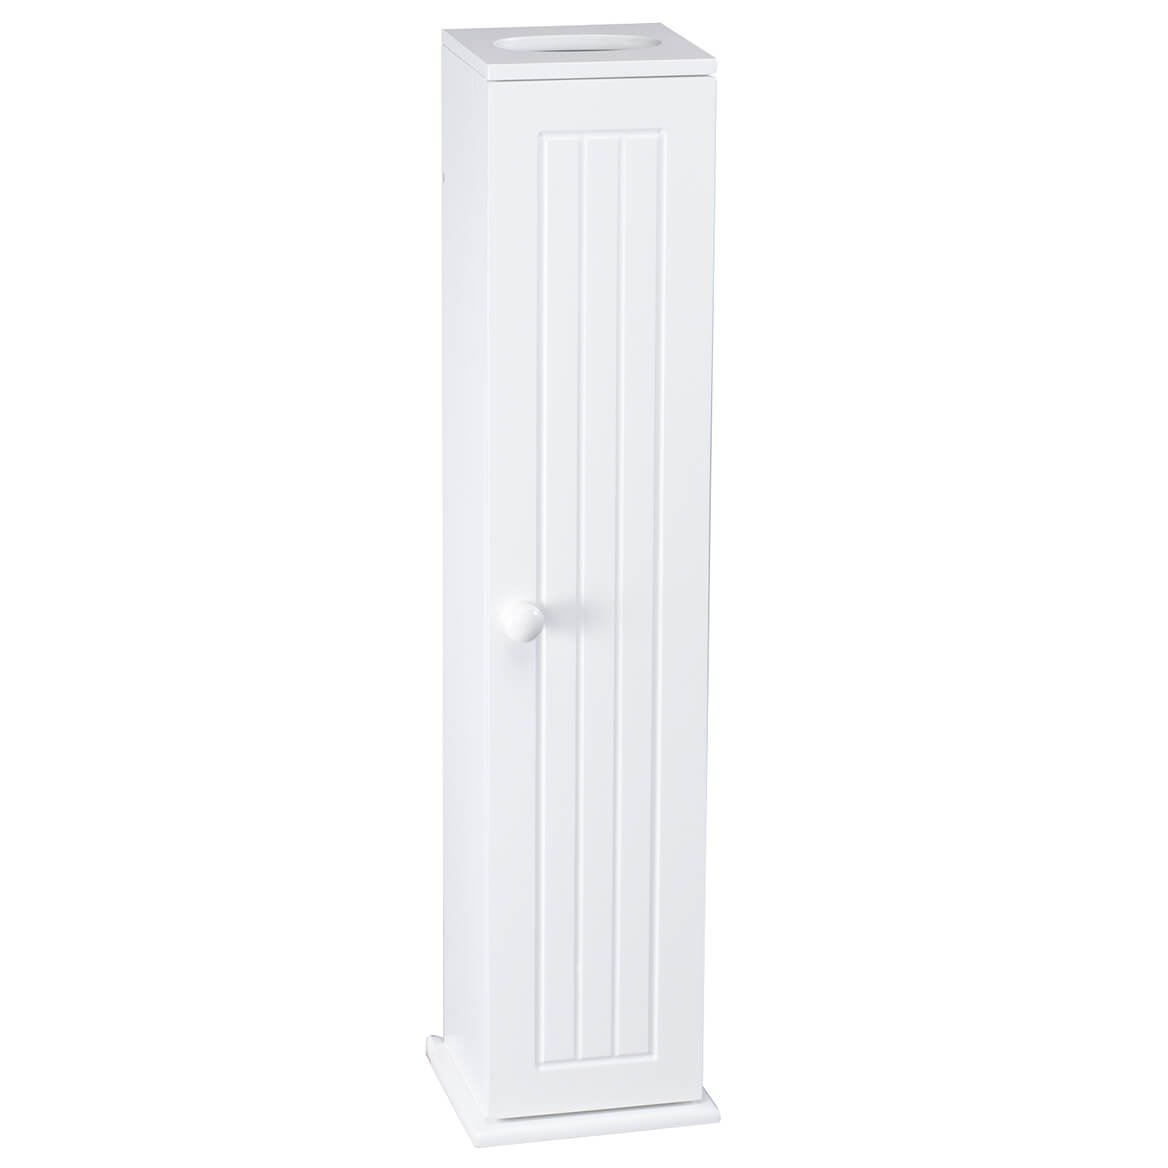 """OakRidge Miles Kimball White Compact Toilet Tissue Storage Tower with 4 Shelves, 5.5"""" W x 27"""" H x 6.75"""" L – Holds Toilet Paper Rolls Up to 4.25"""" Diameter, Top Slot Provides Access to Facial Tissues"""